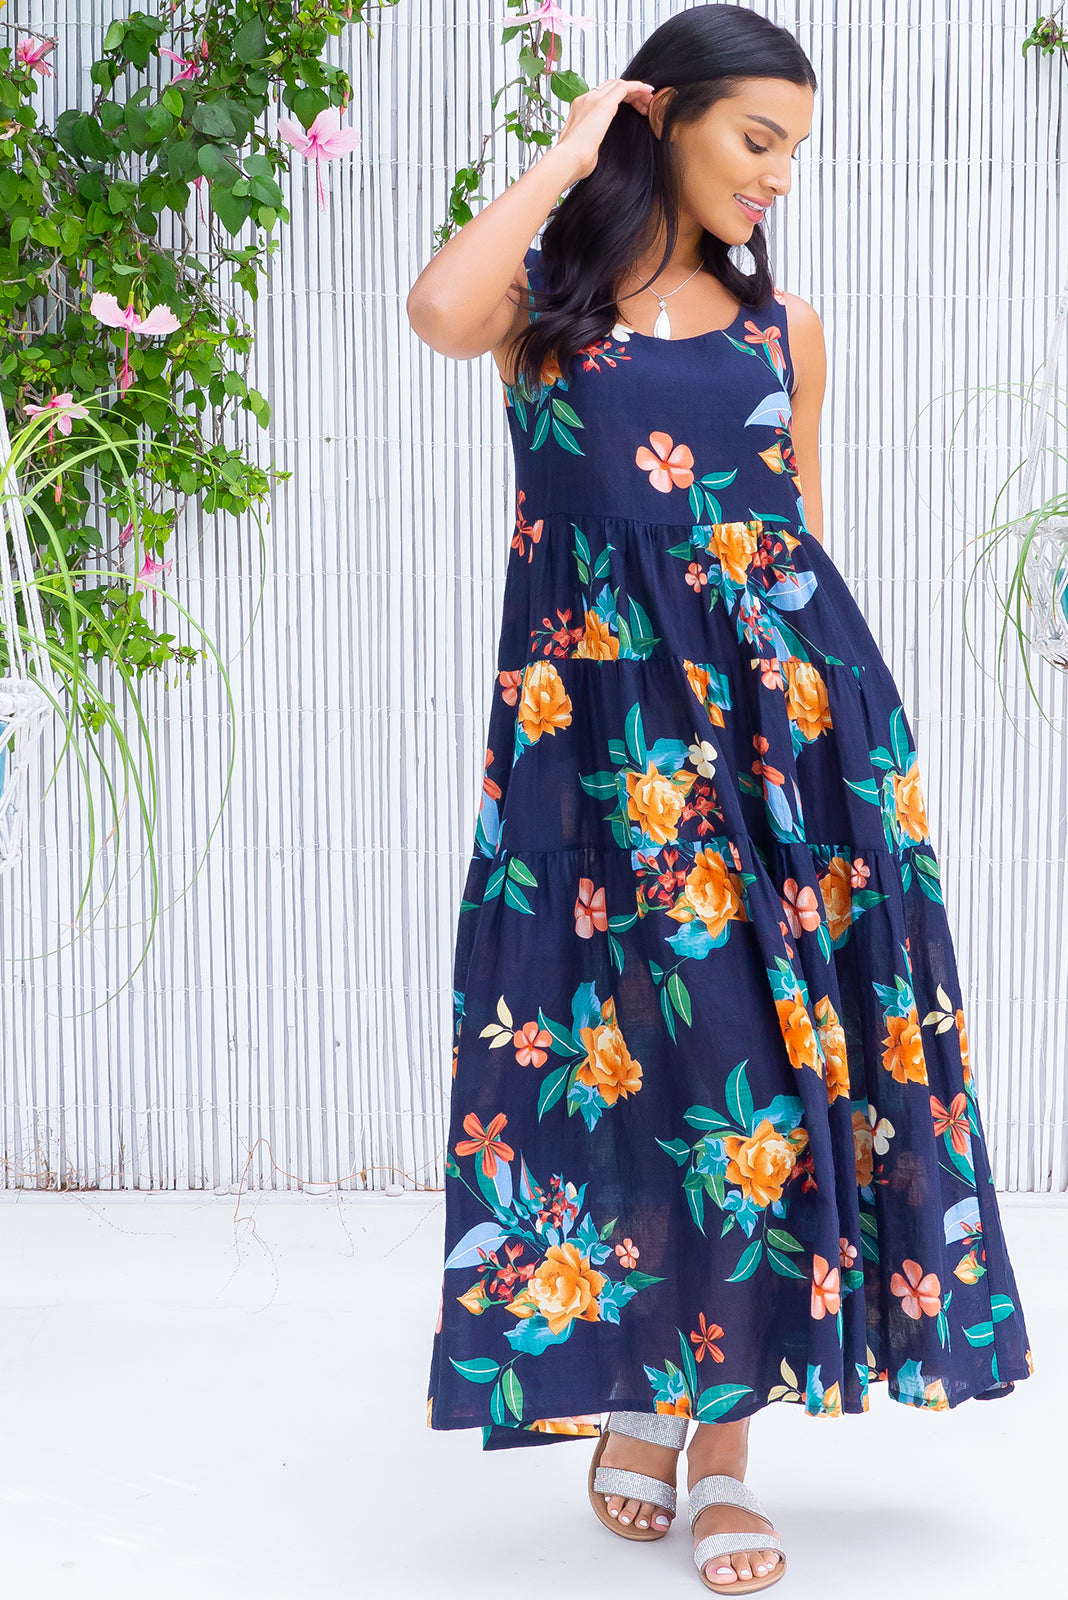 The Jina Ink Maxi Dres features lightweight/non-stretch fabric, scooped neckline, lined bust, side pockets, tiered, full skirt and 70% cotton, 30% rayon in ink base with large tropical floral print.